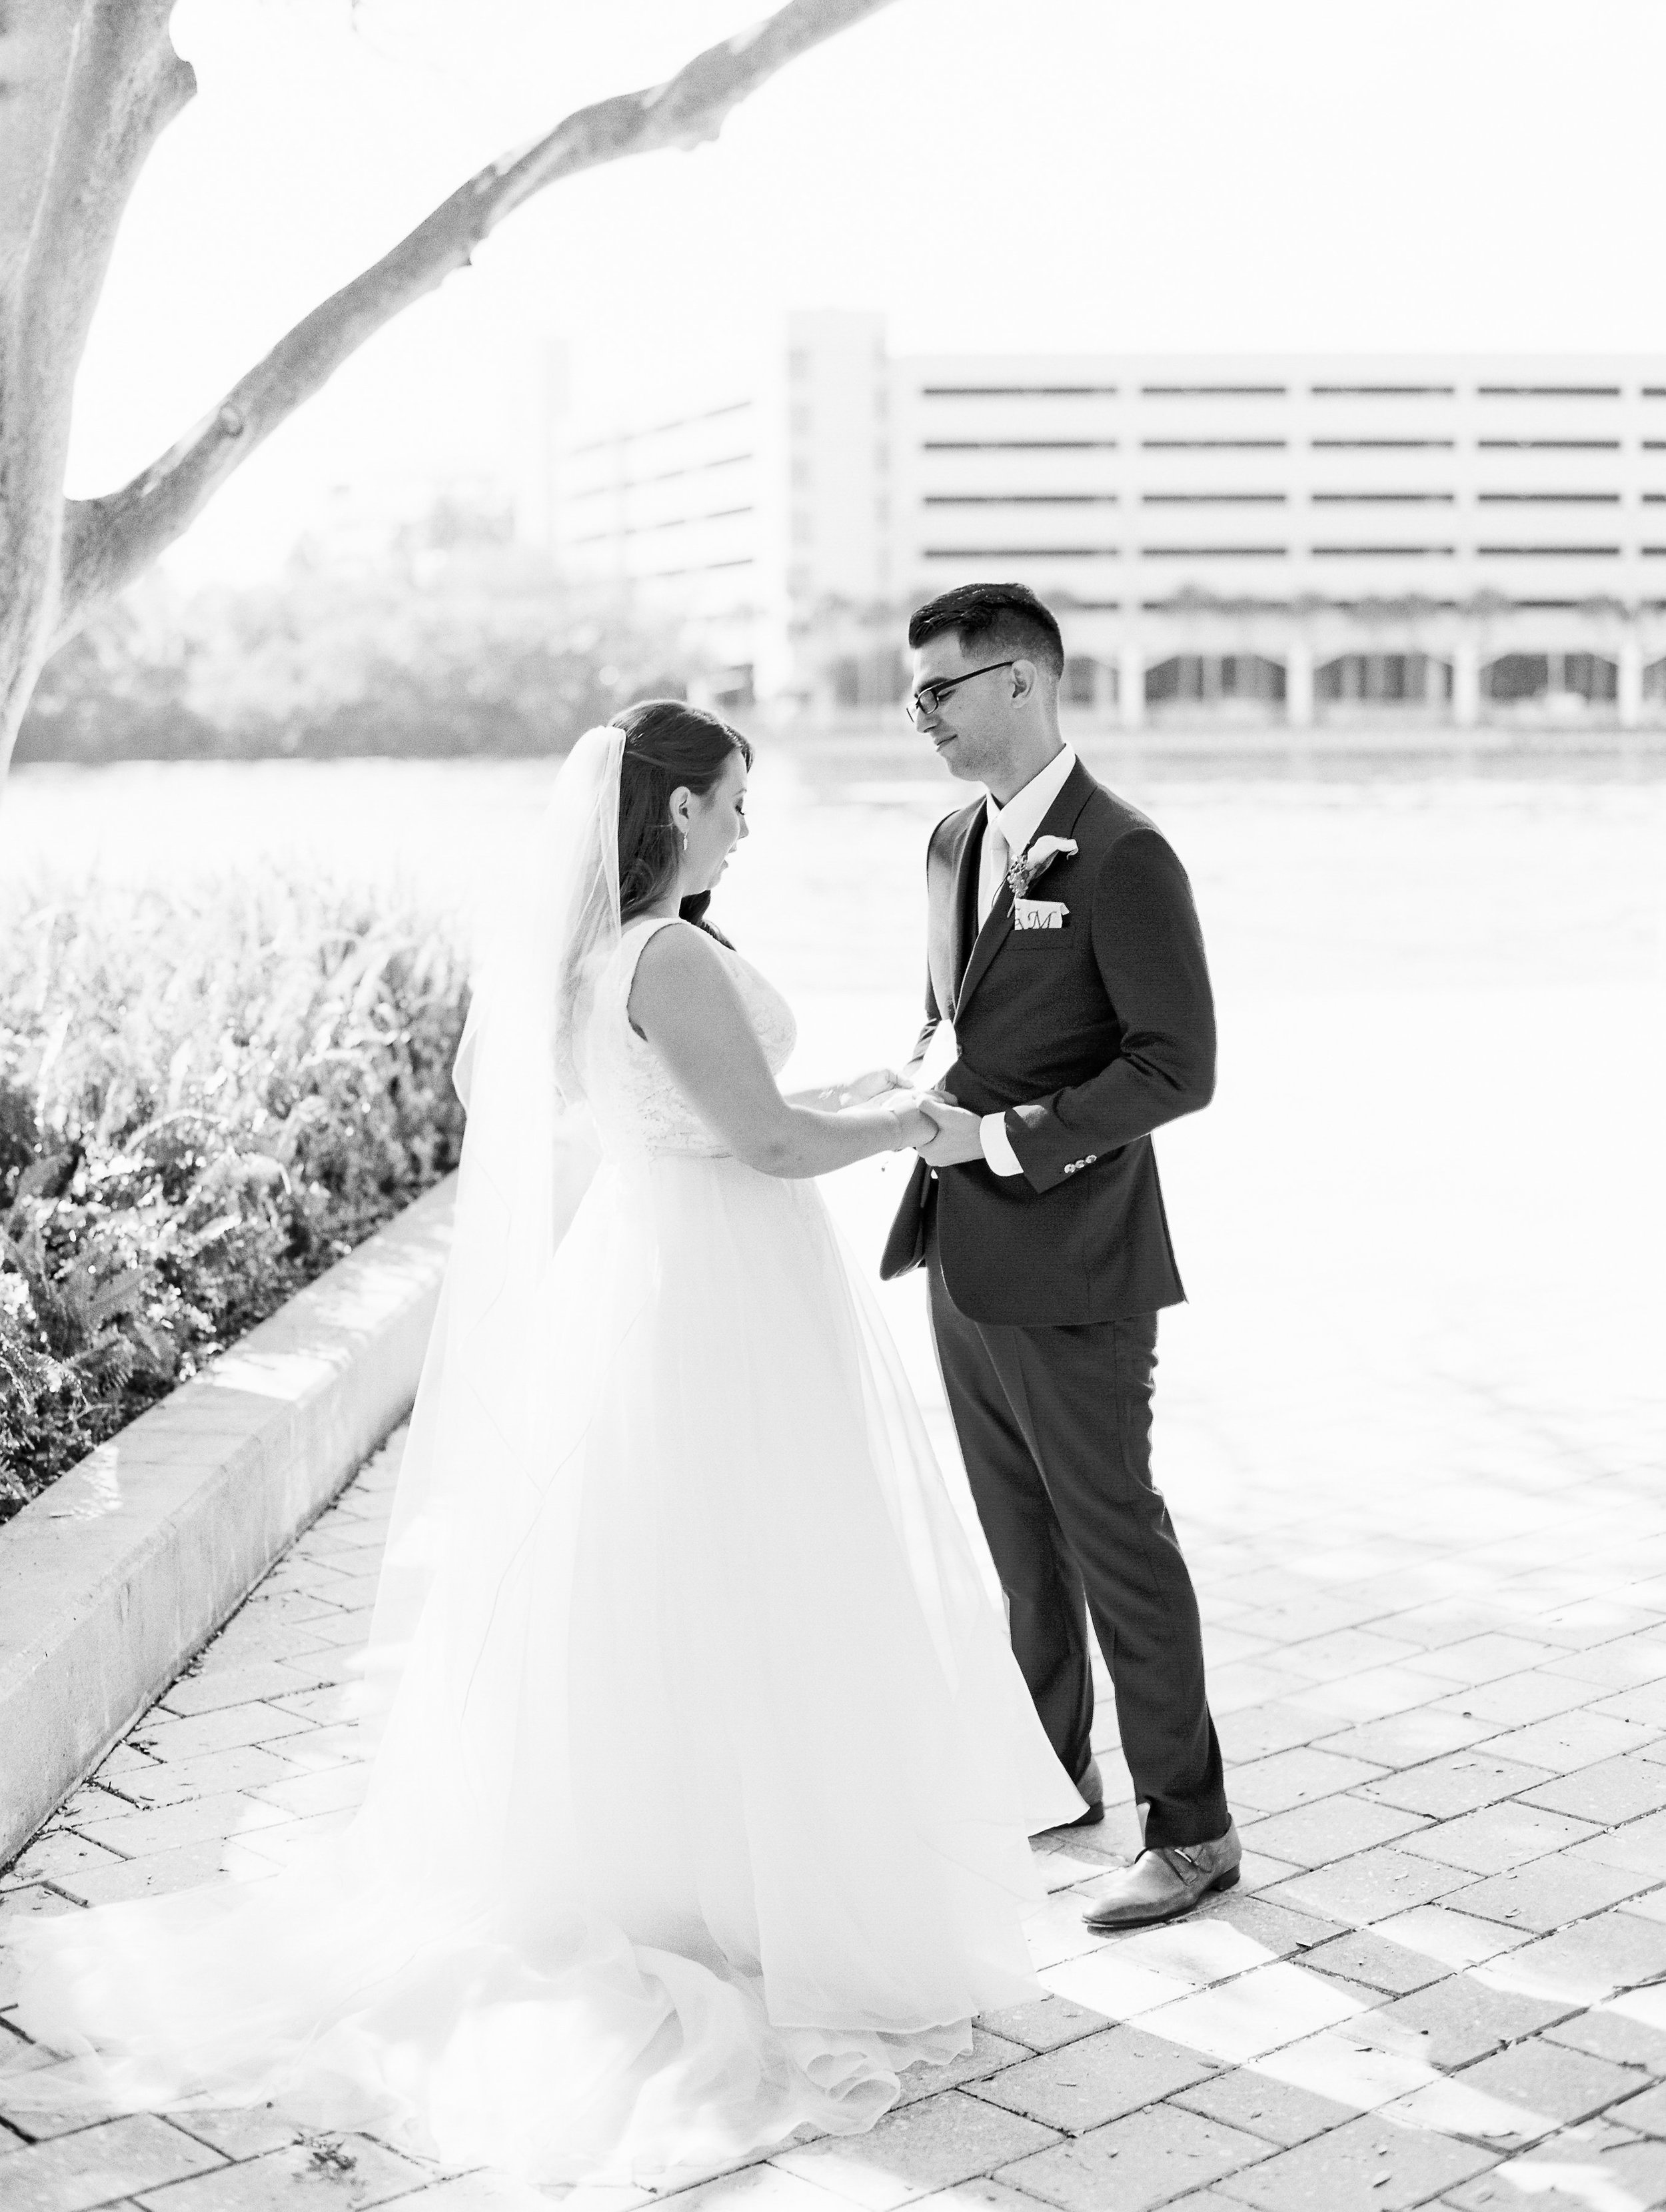 The couple read handwritten letters to each other during the intimate moment of their first look.